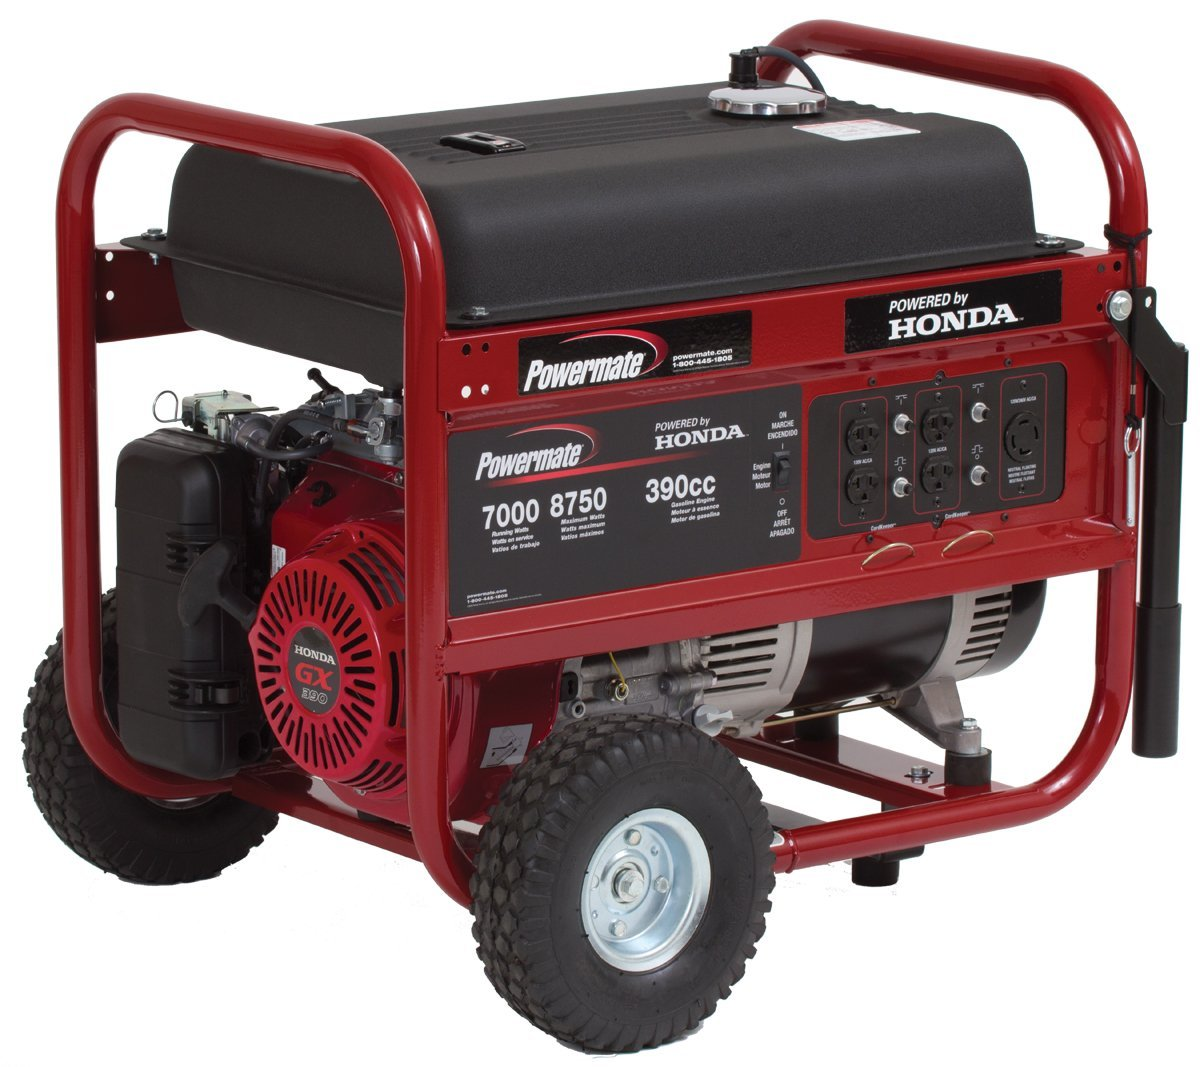 Powermate Portable Generator Pm0497000 8750 Watt Honda Gas Engine Schematics